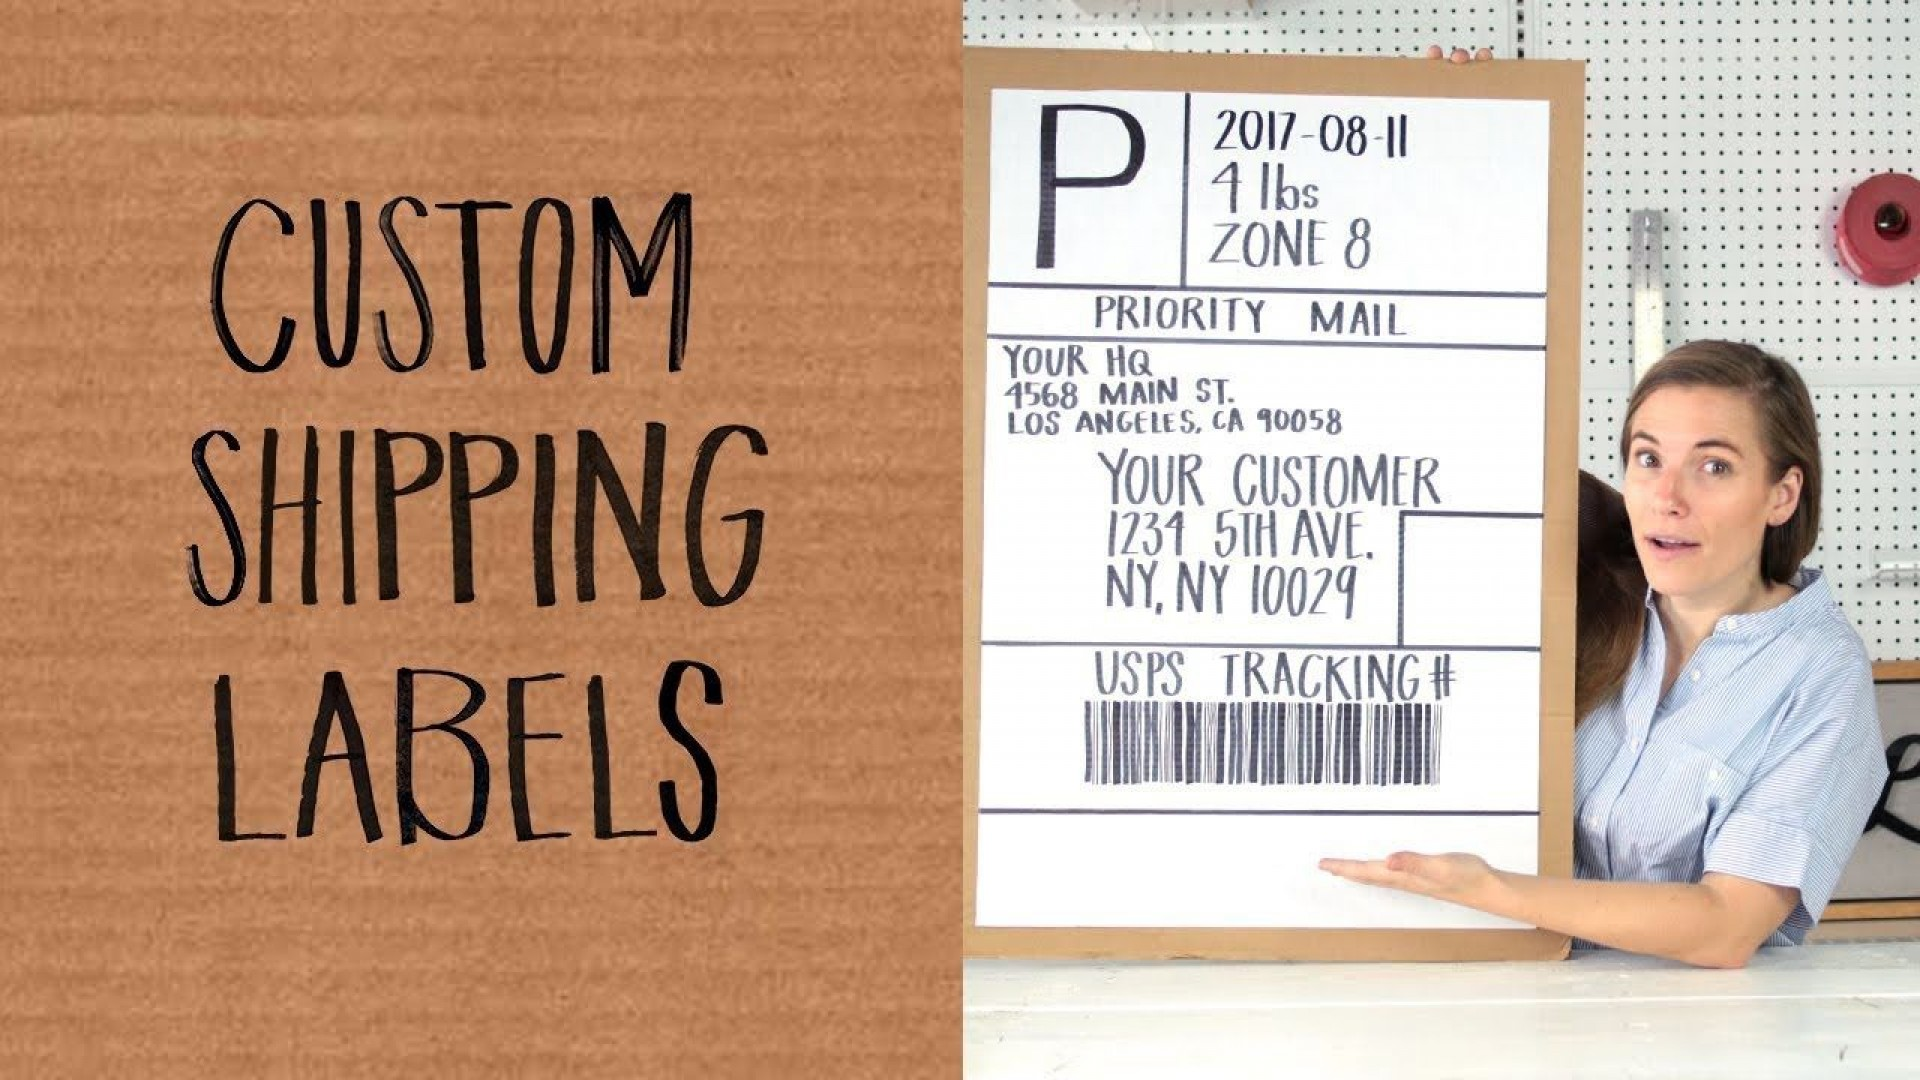 007 Wonderful Usp Shipping Label Template Free Image 1920